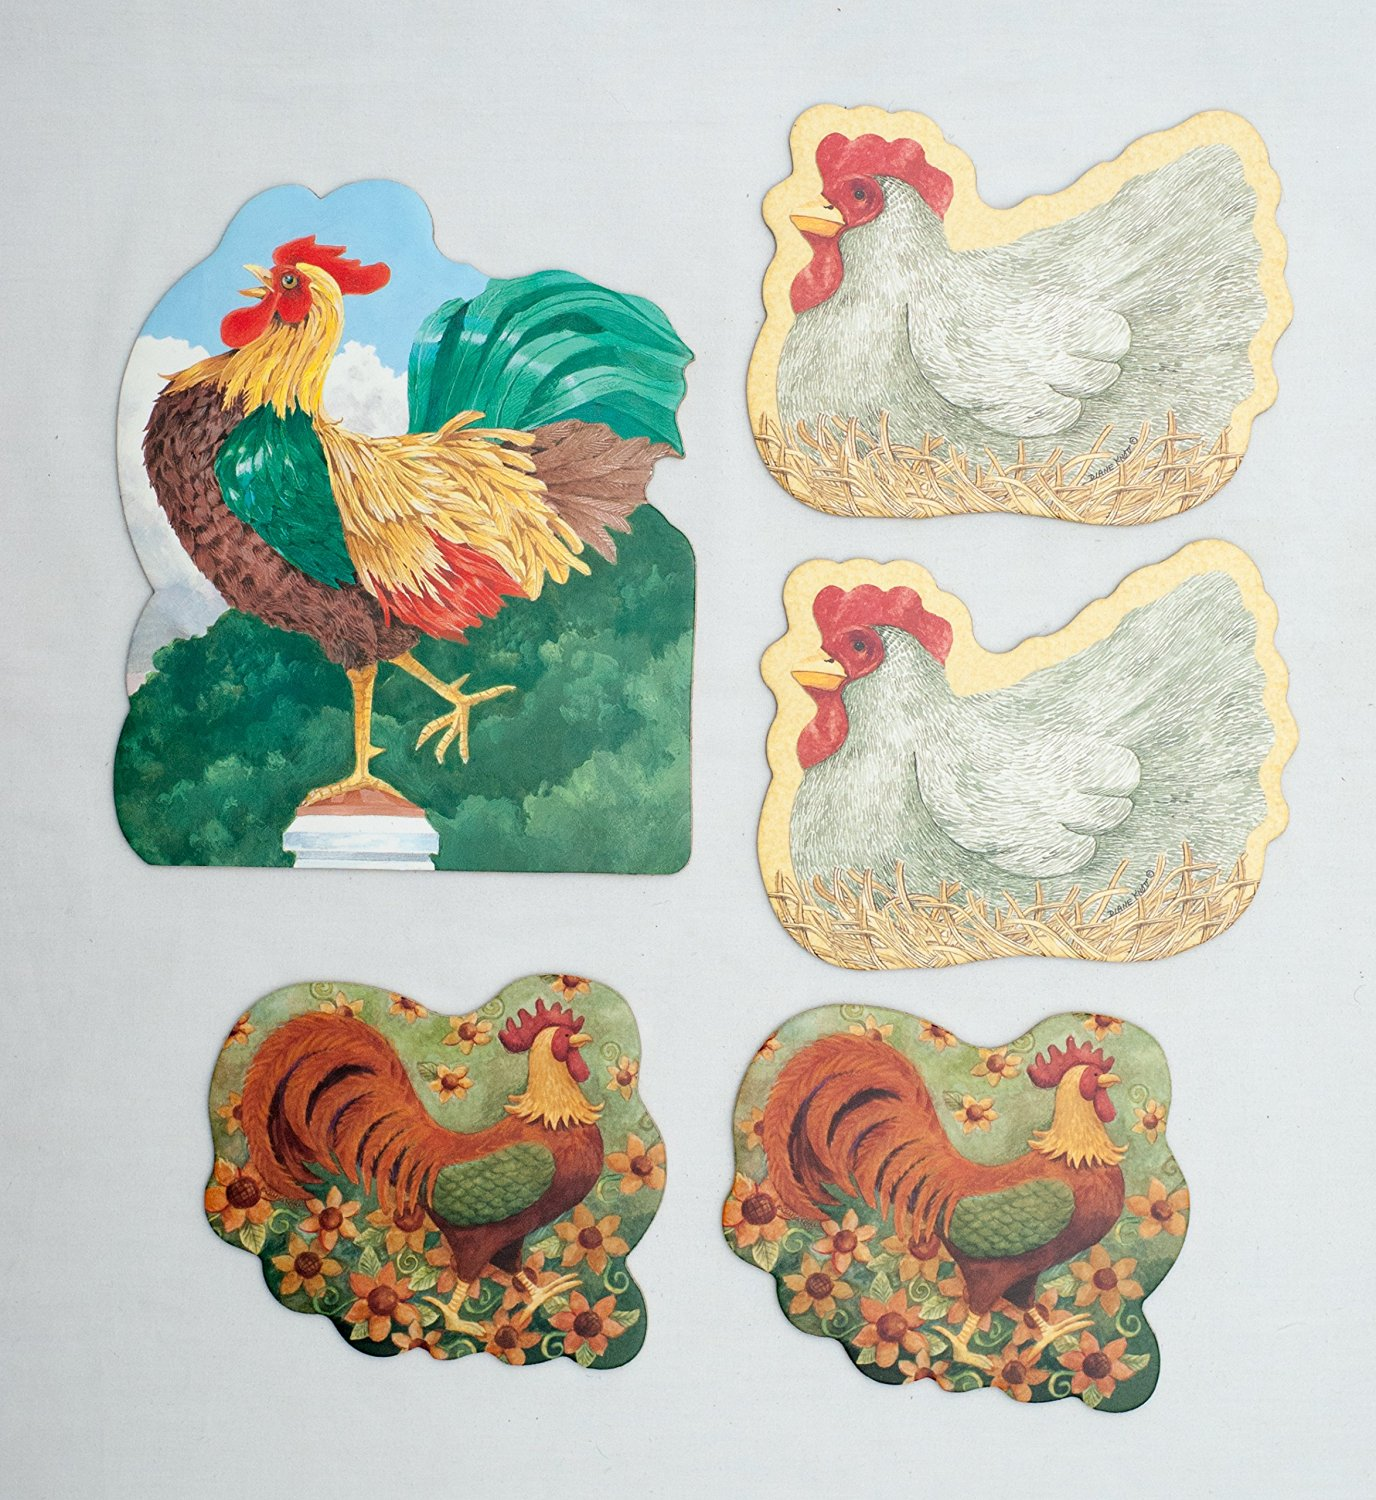 Hen and Rooster Chicken Themed Absorbent Beverage and Pitcher Coasters with Cork Backing (Pack of 5) Beverage Coaster Artwork by Diane Knott and Teresa Kogut